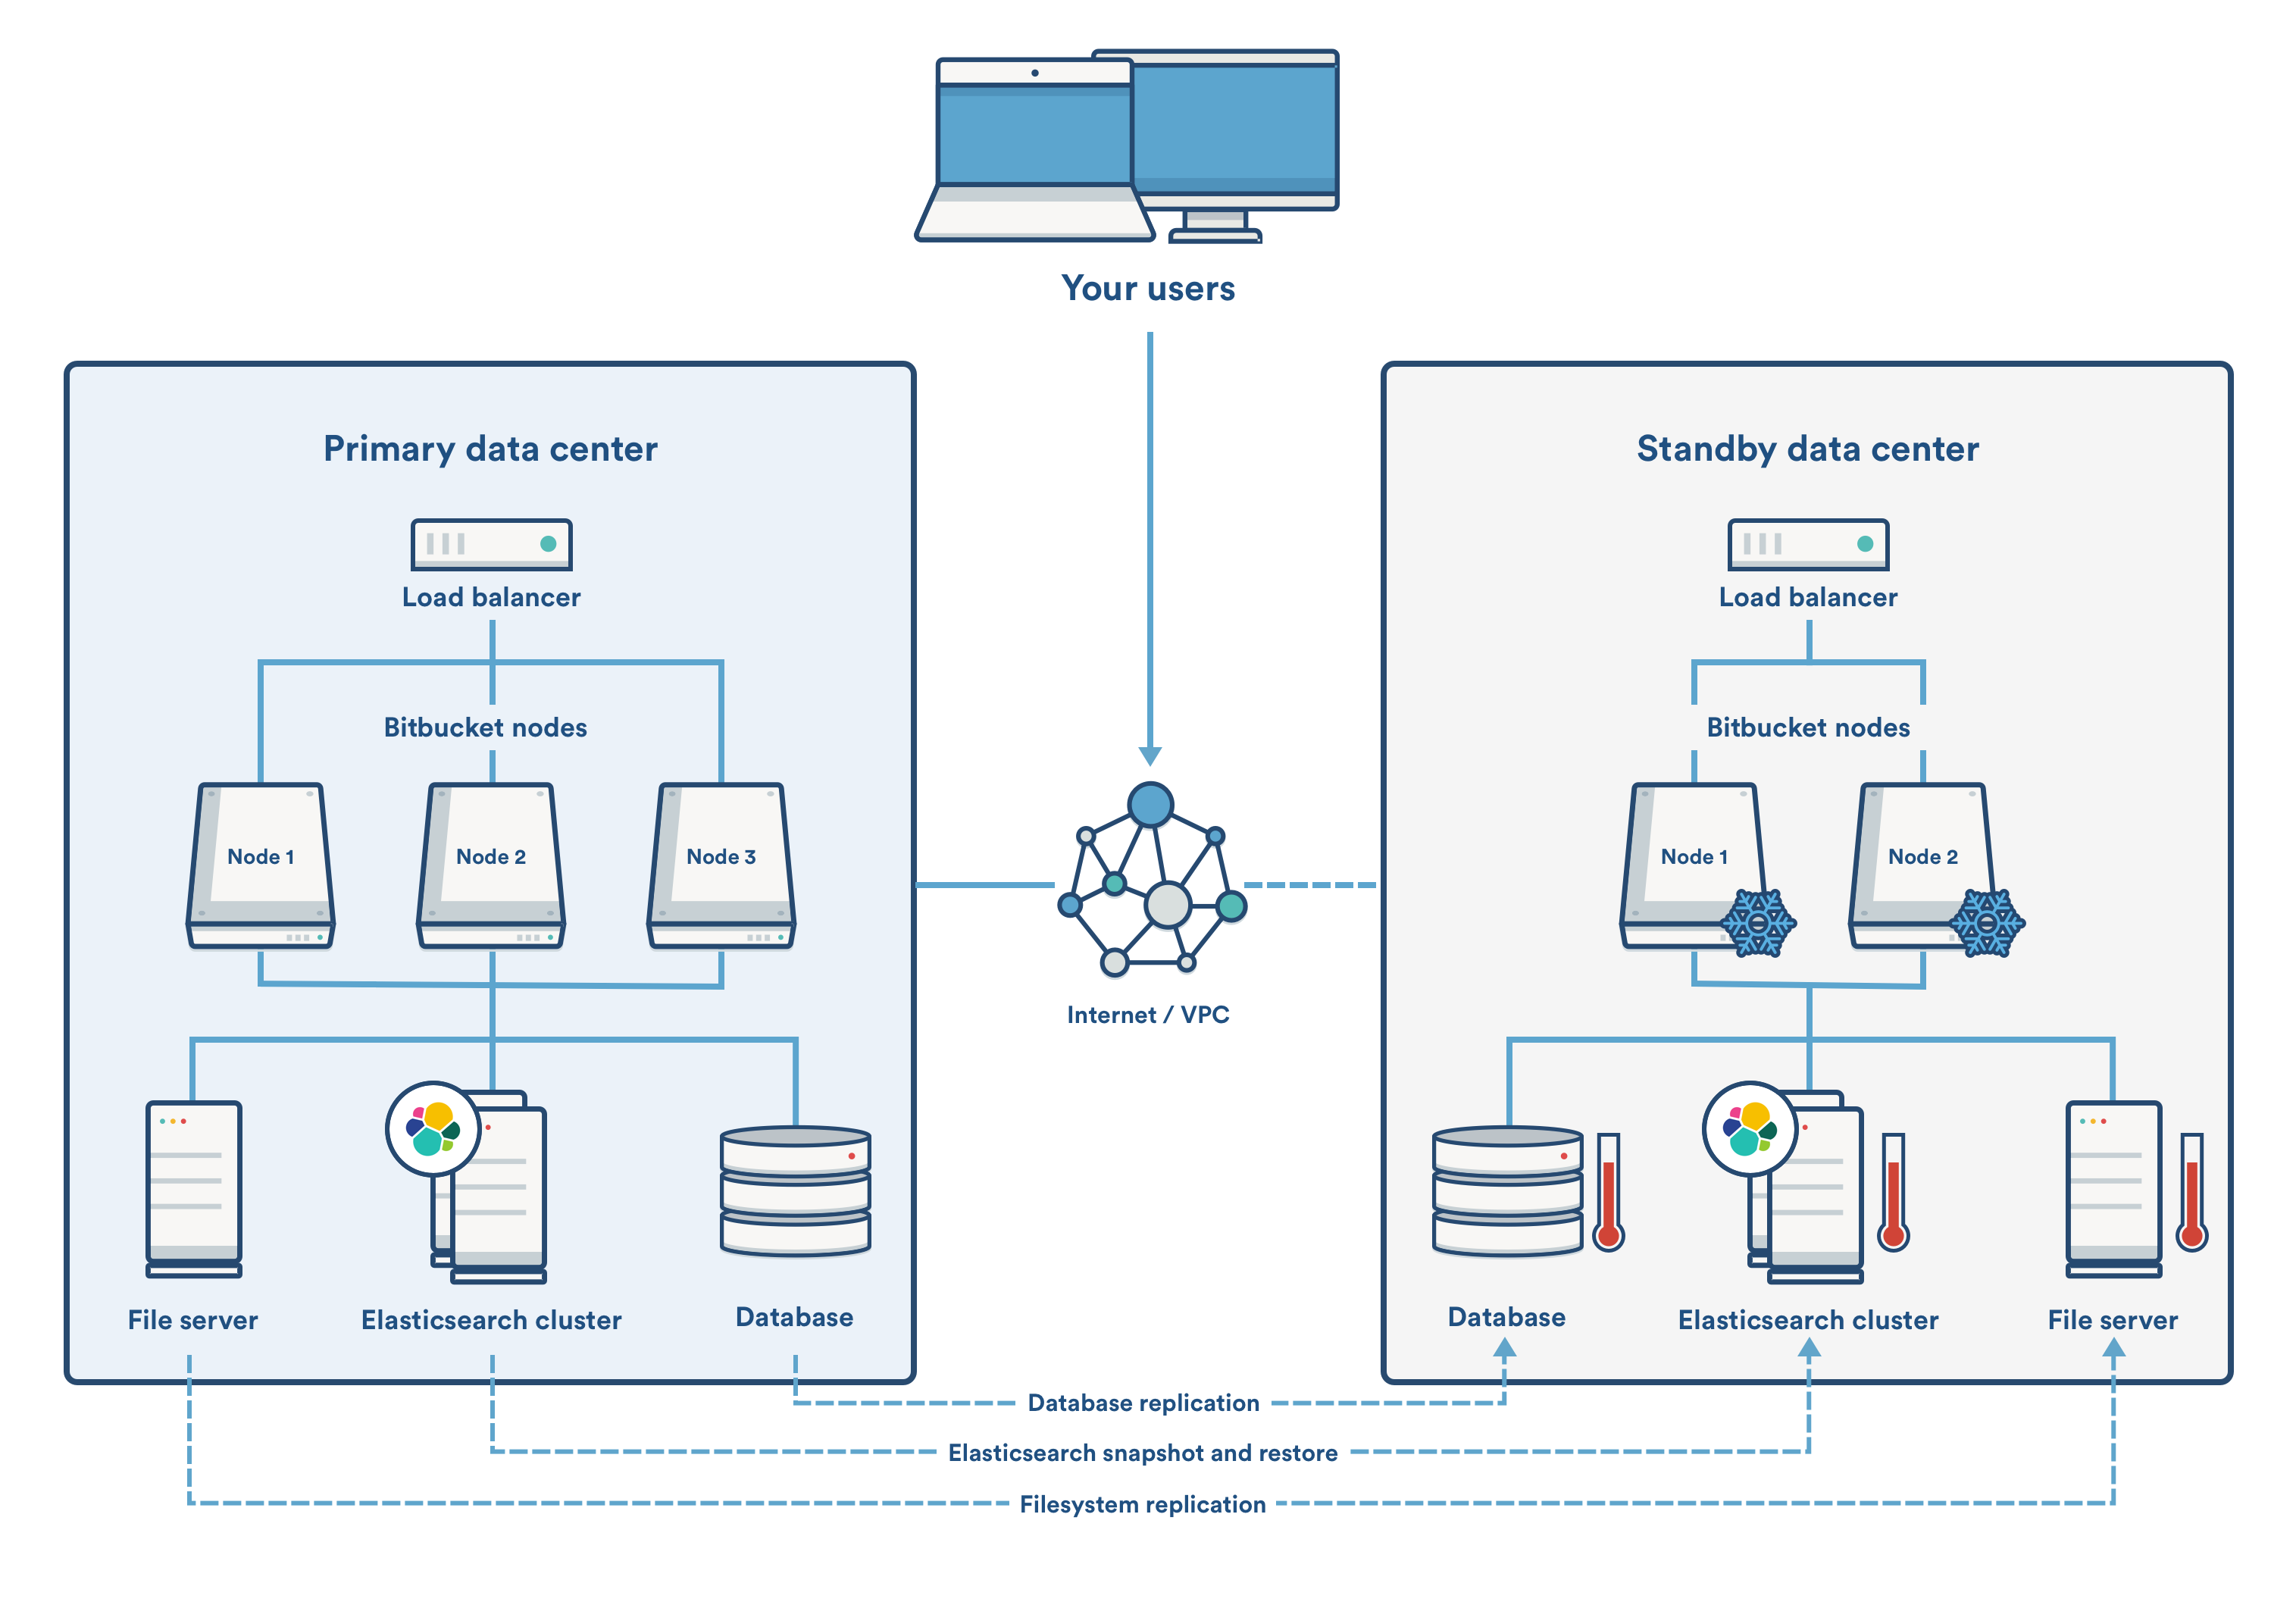 Disaster recovery guide for Bitbucket Data Center